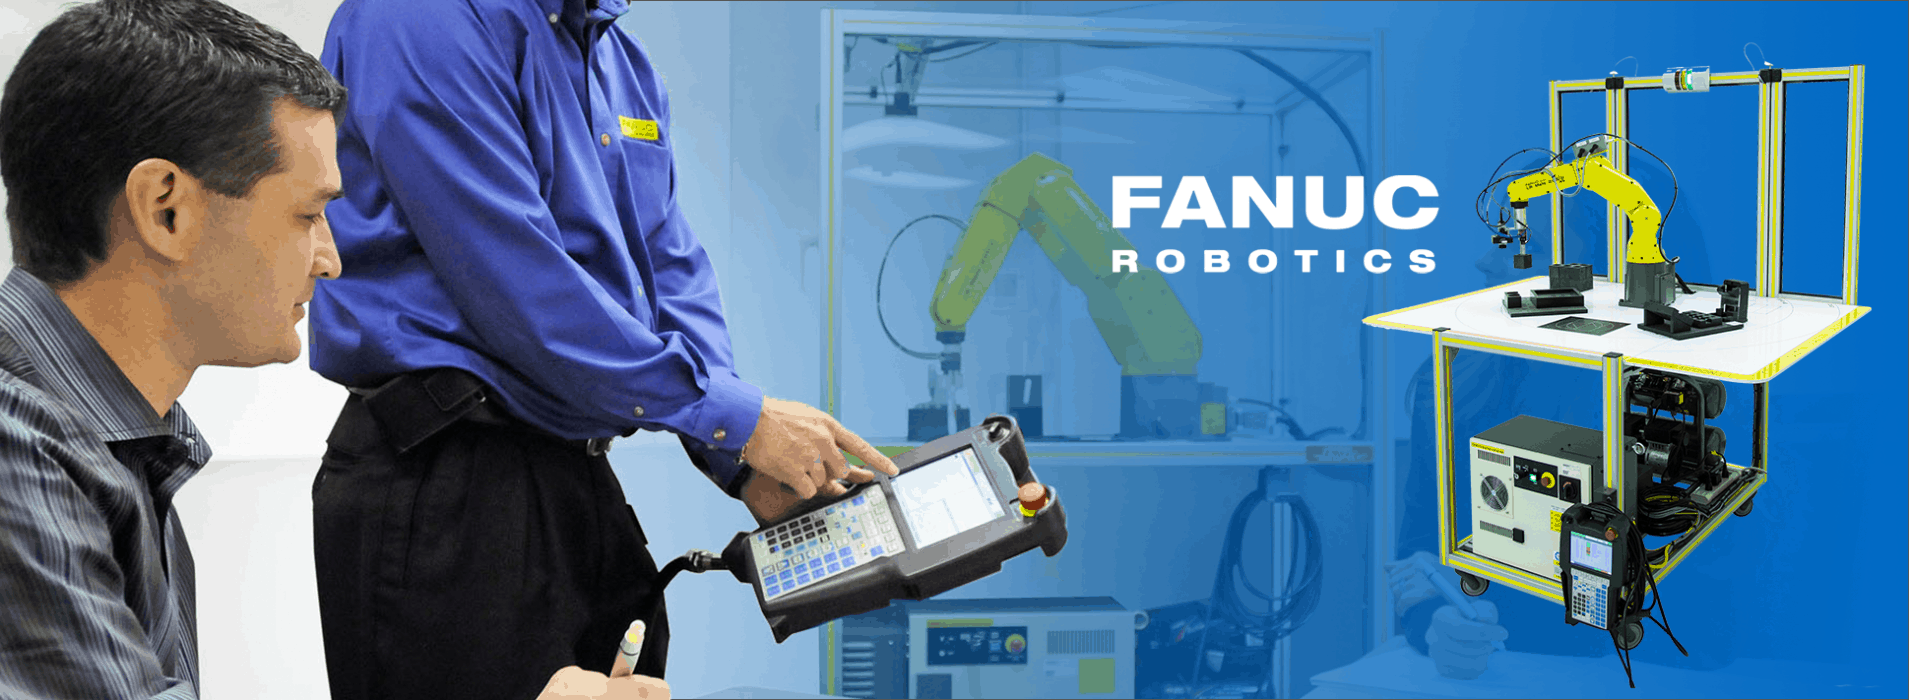 FANUC Robotics Solutions